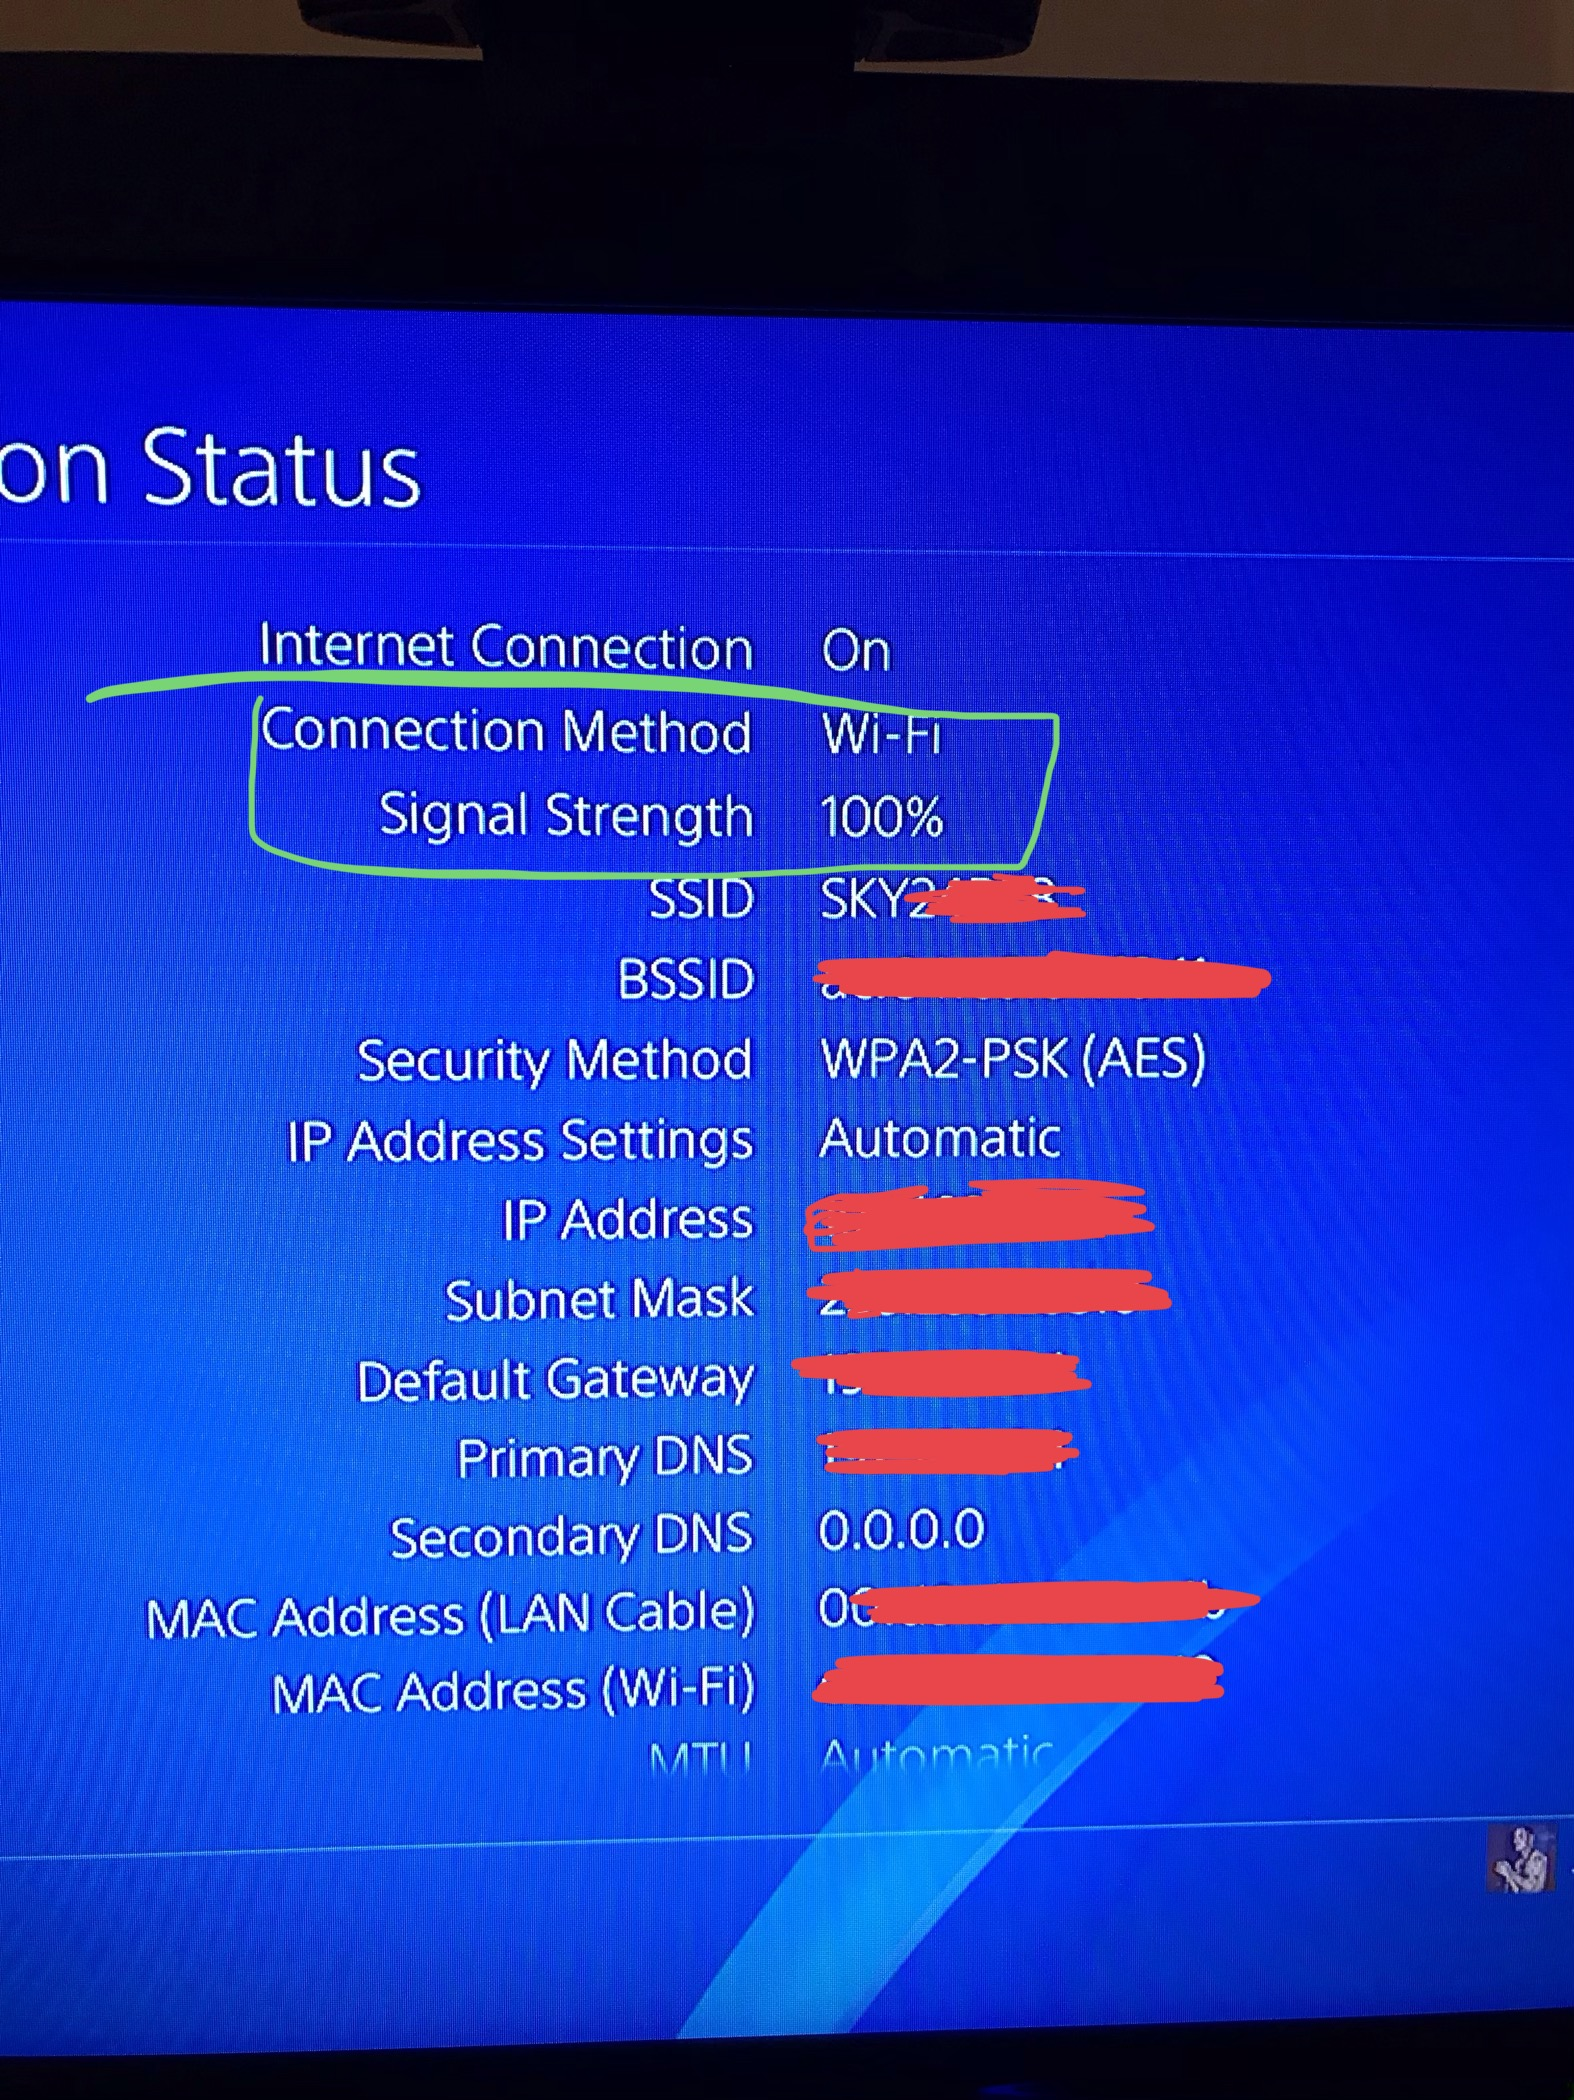 Terrible lag making online gaming impssible on PS4 - Sky Community